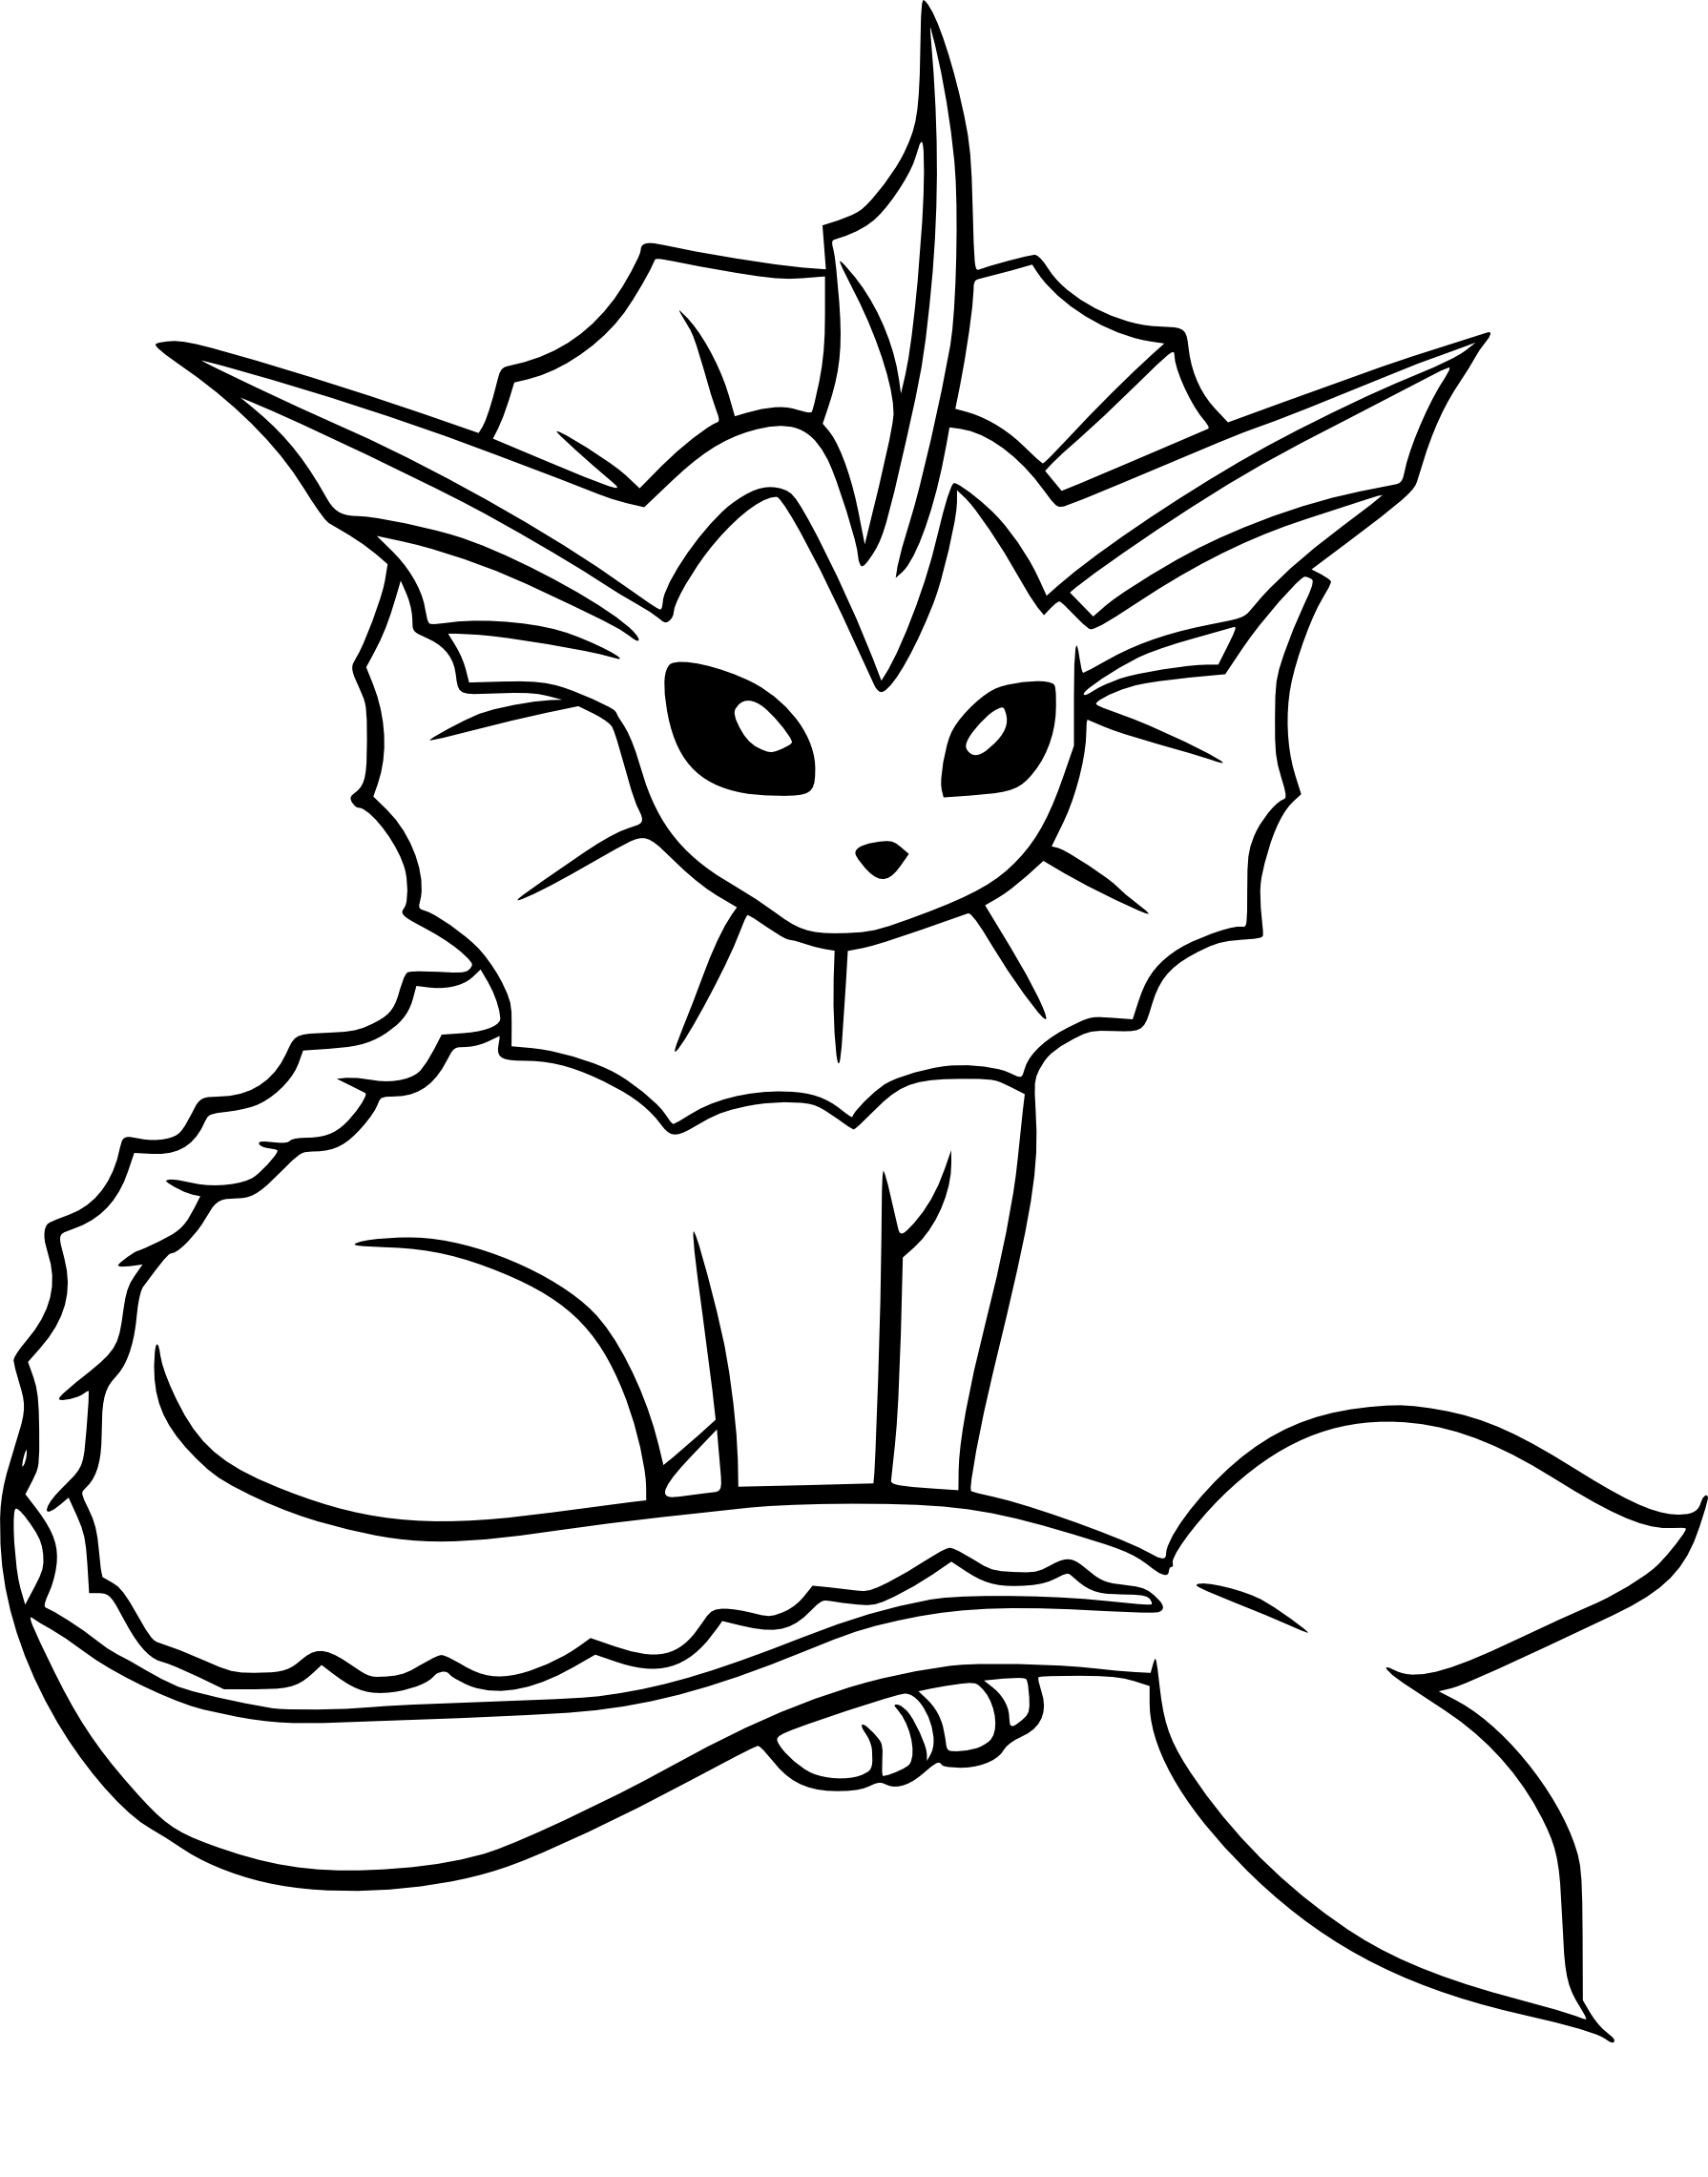 Coloriage aquali pokemon imprimer - Coloriage prin ...